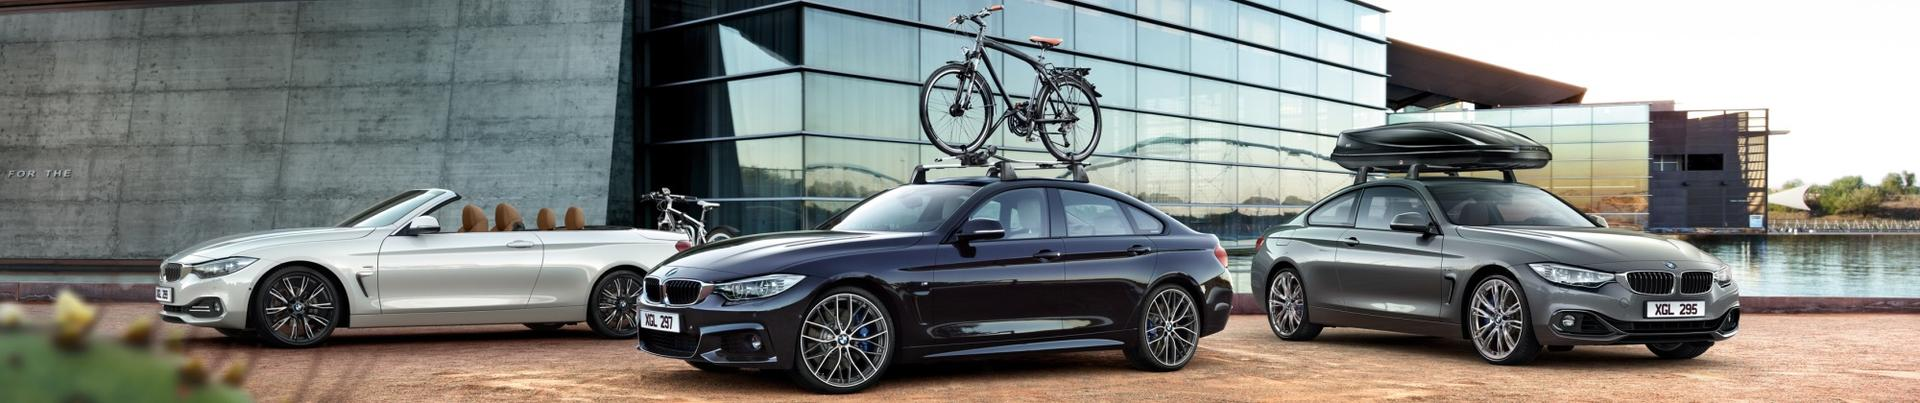 BMW Accessory Pack Range from Listers